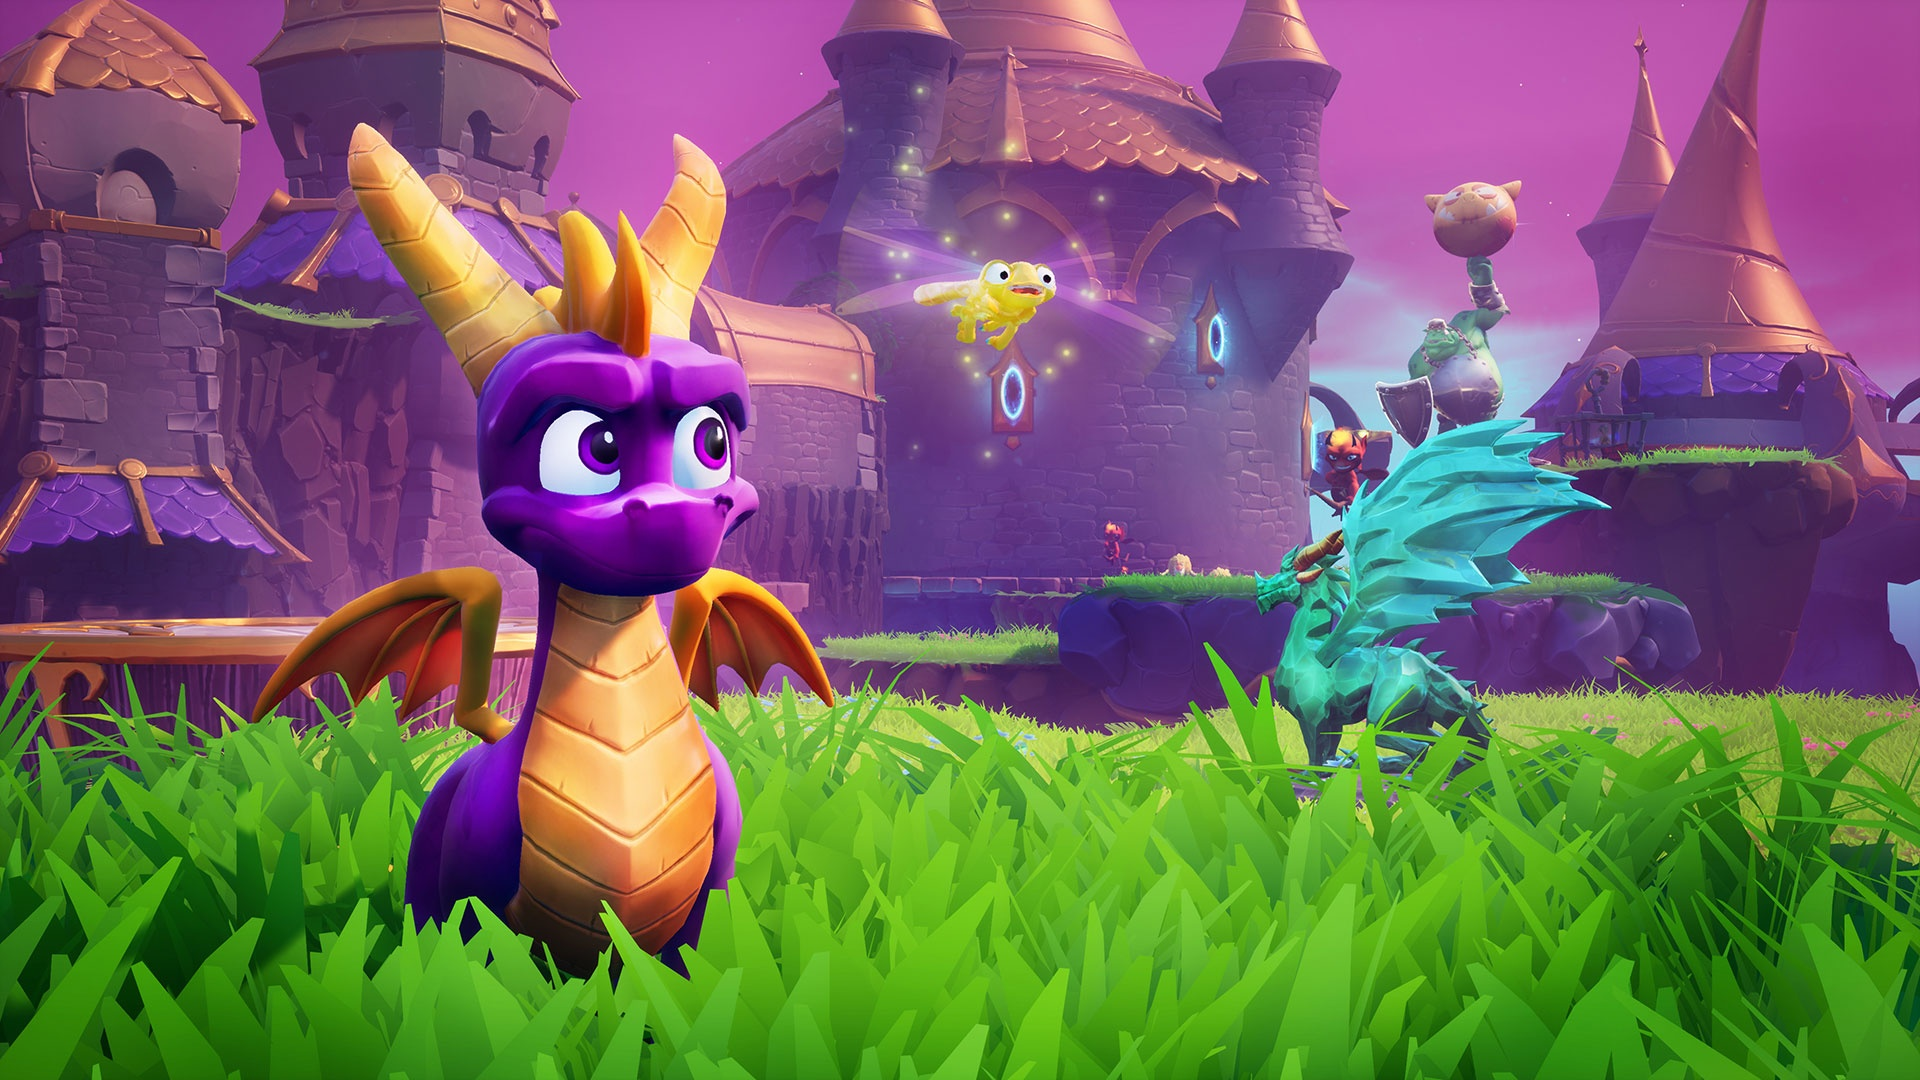 Системные требования PC-версии Spyro Reignited Trilogy